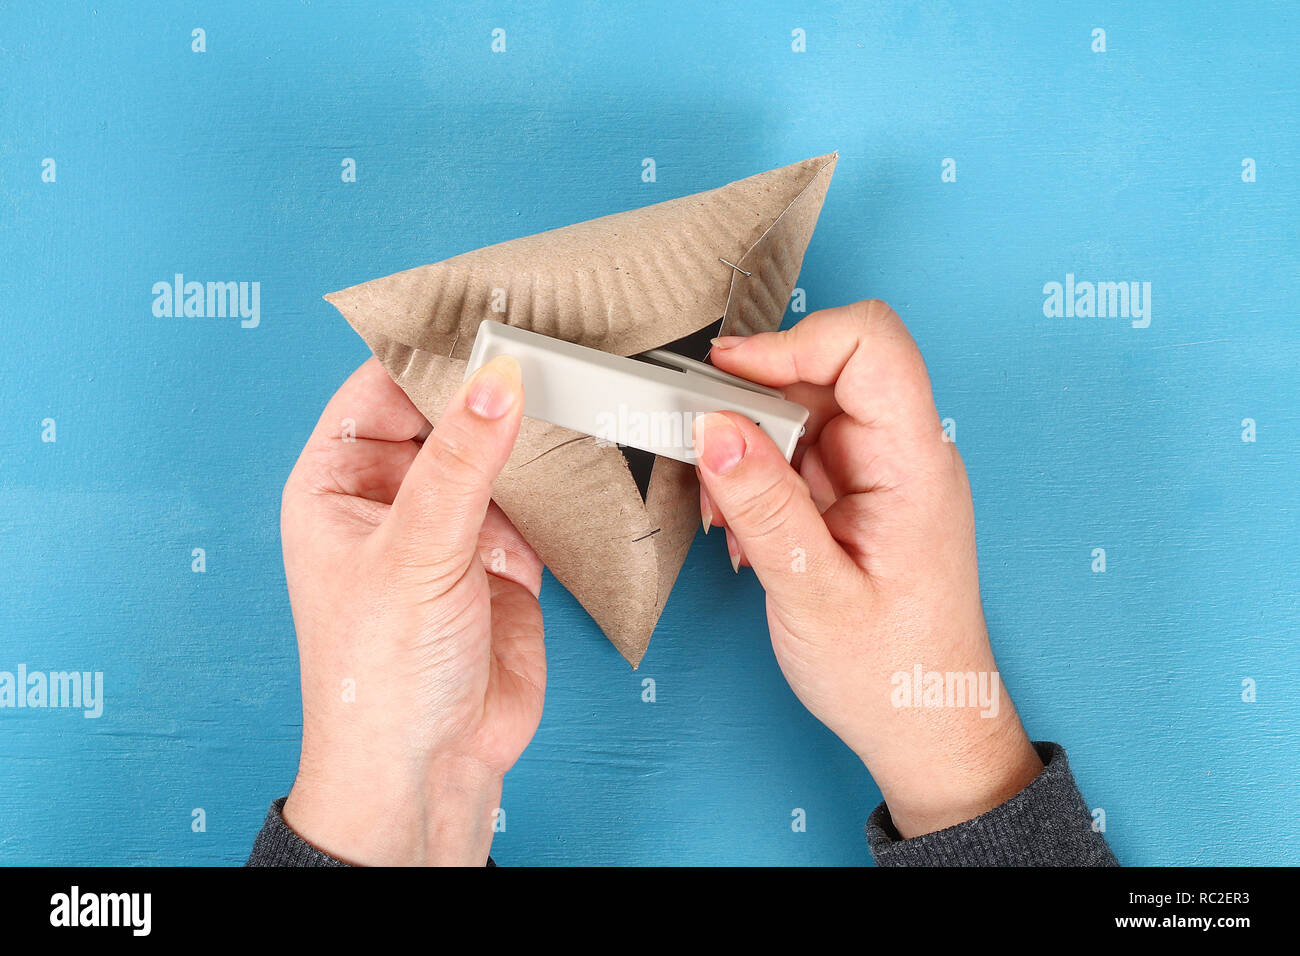 Purim. Diy cookies hamantaschen of cardboard plates with sweet surprise inside on blue background. Gift ideas for children, decor to Purim. Handmade.  - Stock Image